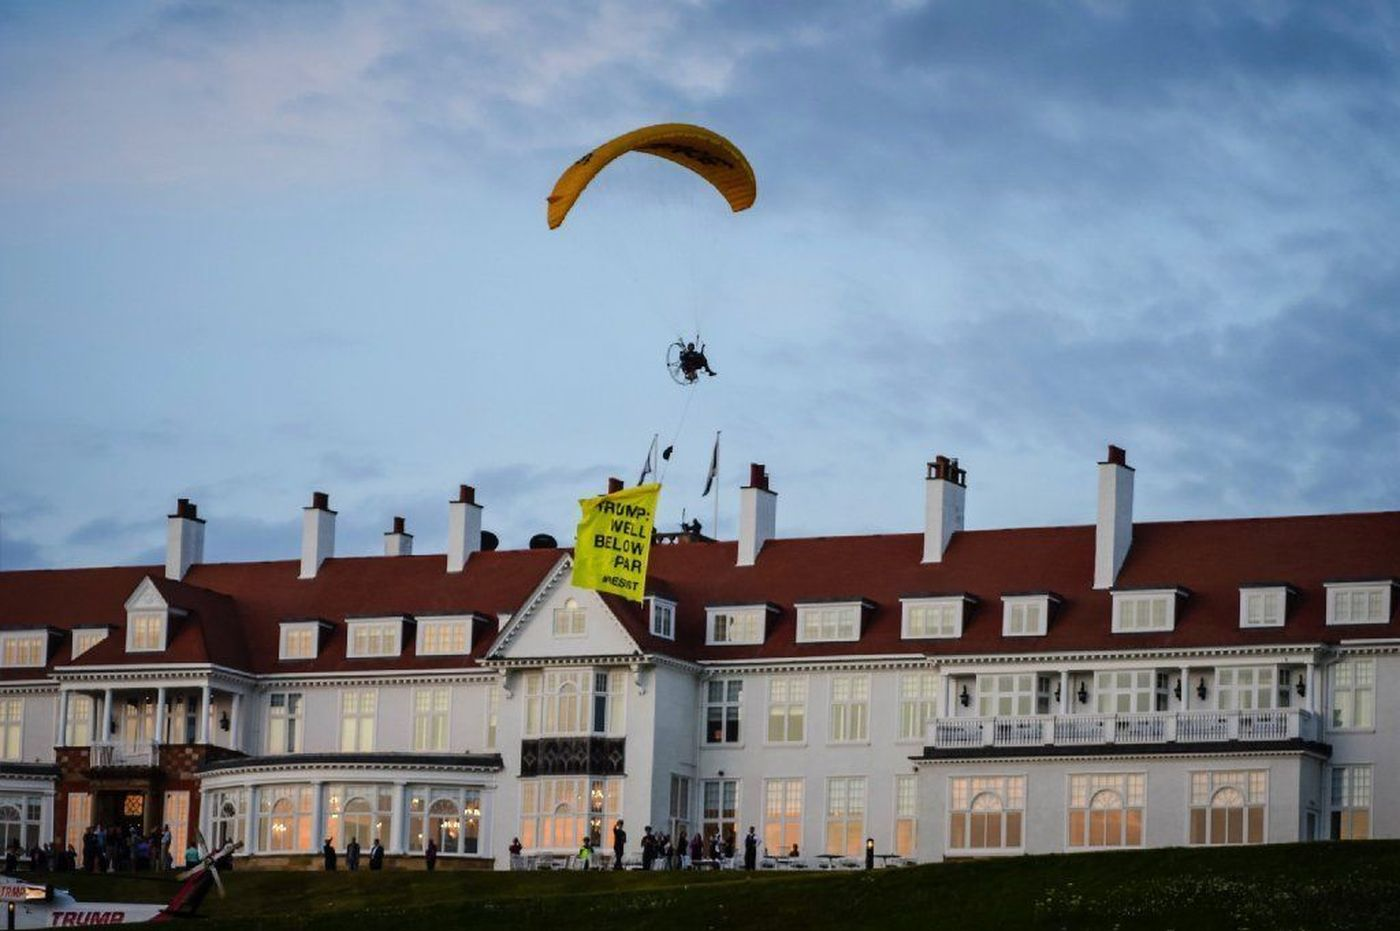 Paraglider arrested and charged after flying close to President Trump in Scotland protest https://t.co/GaJ49L1XT4 https://t.co/VKPoc03GVk